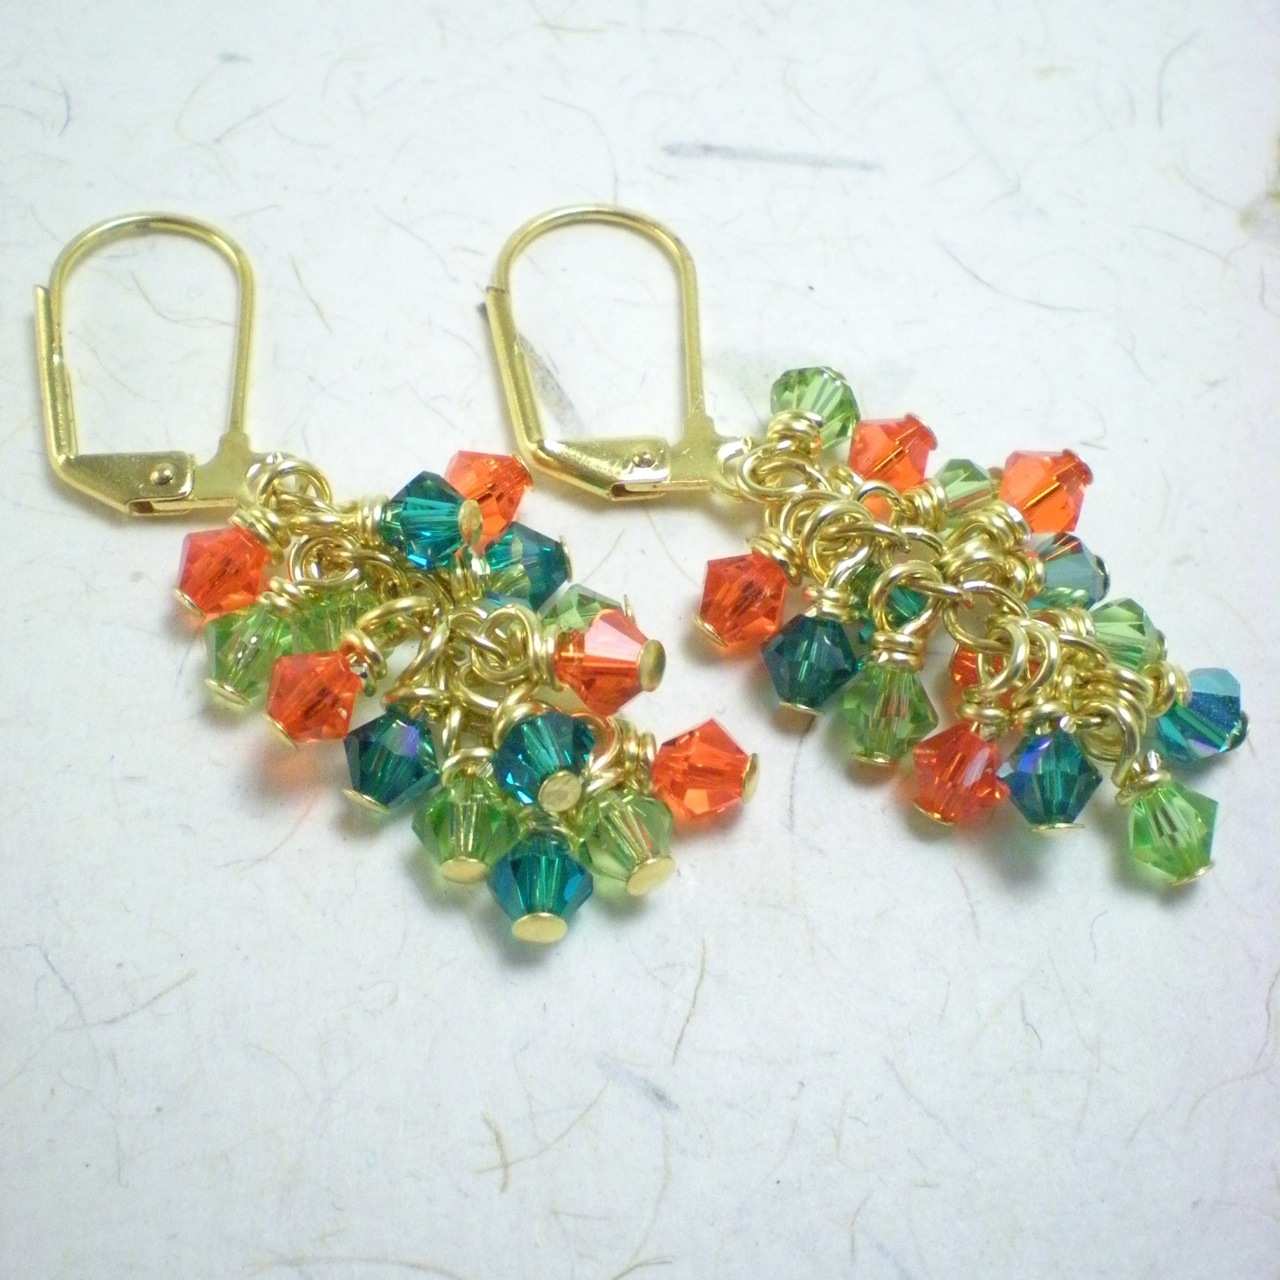 Honeymoon, Destinations, yellow, red, gold, Honeymoons, Summer, Wedding, Party, Bridesmaid, Bridal, Destination, Bachelorette, Teal, Bright, Colorful, Crystal, Swarovski, Island, Cascade, Color, Dinner, Rehearsal, Coral, Shower, Turquoise, Dana saylor designs, Vibrant, Cluster